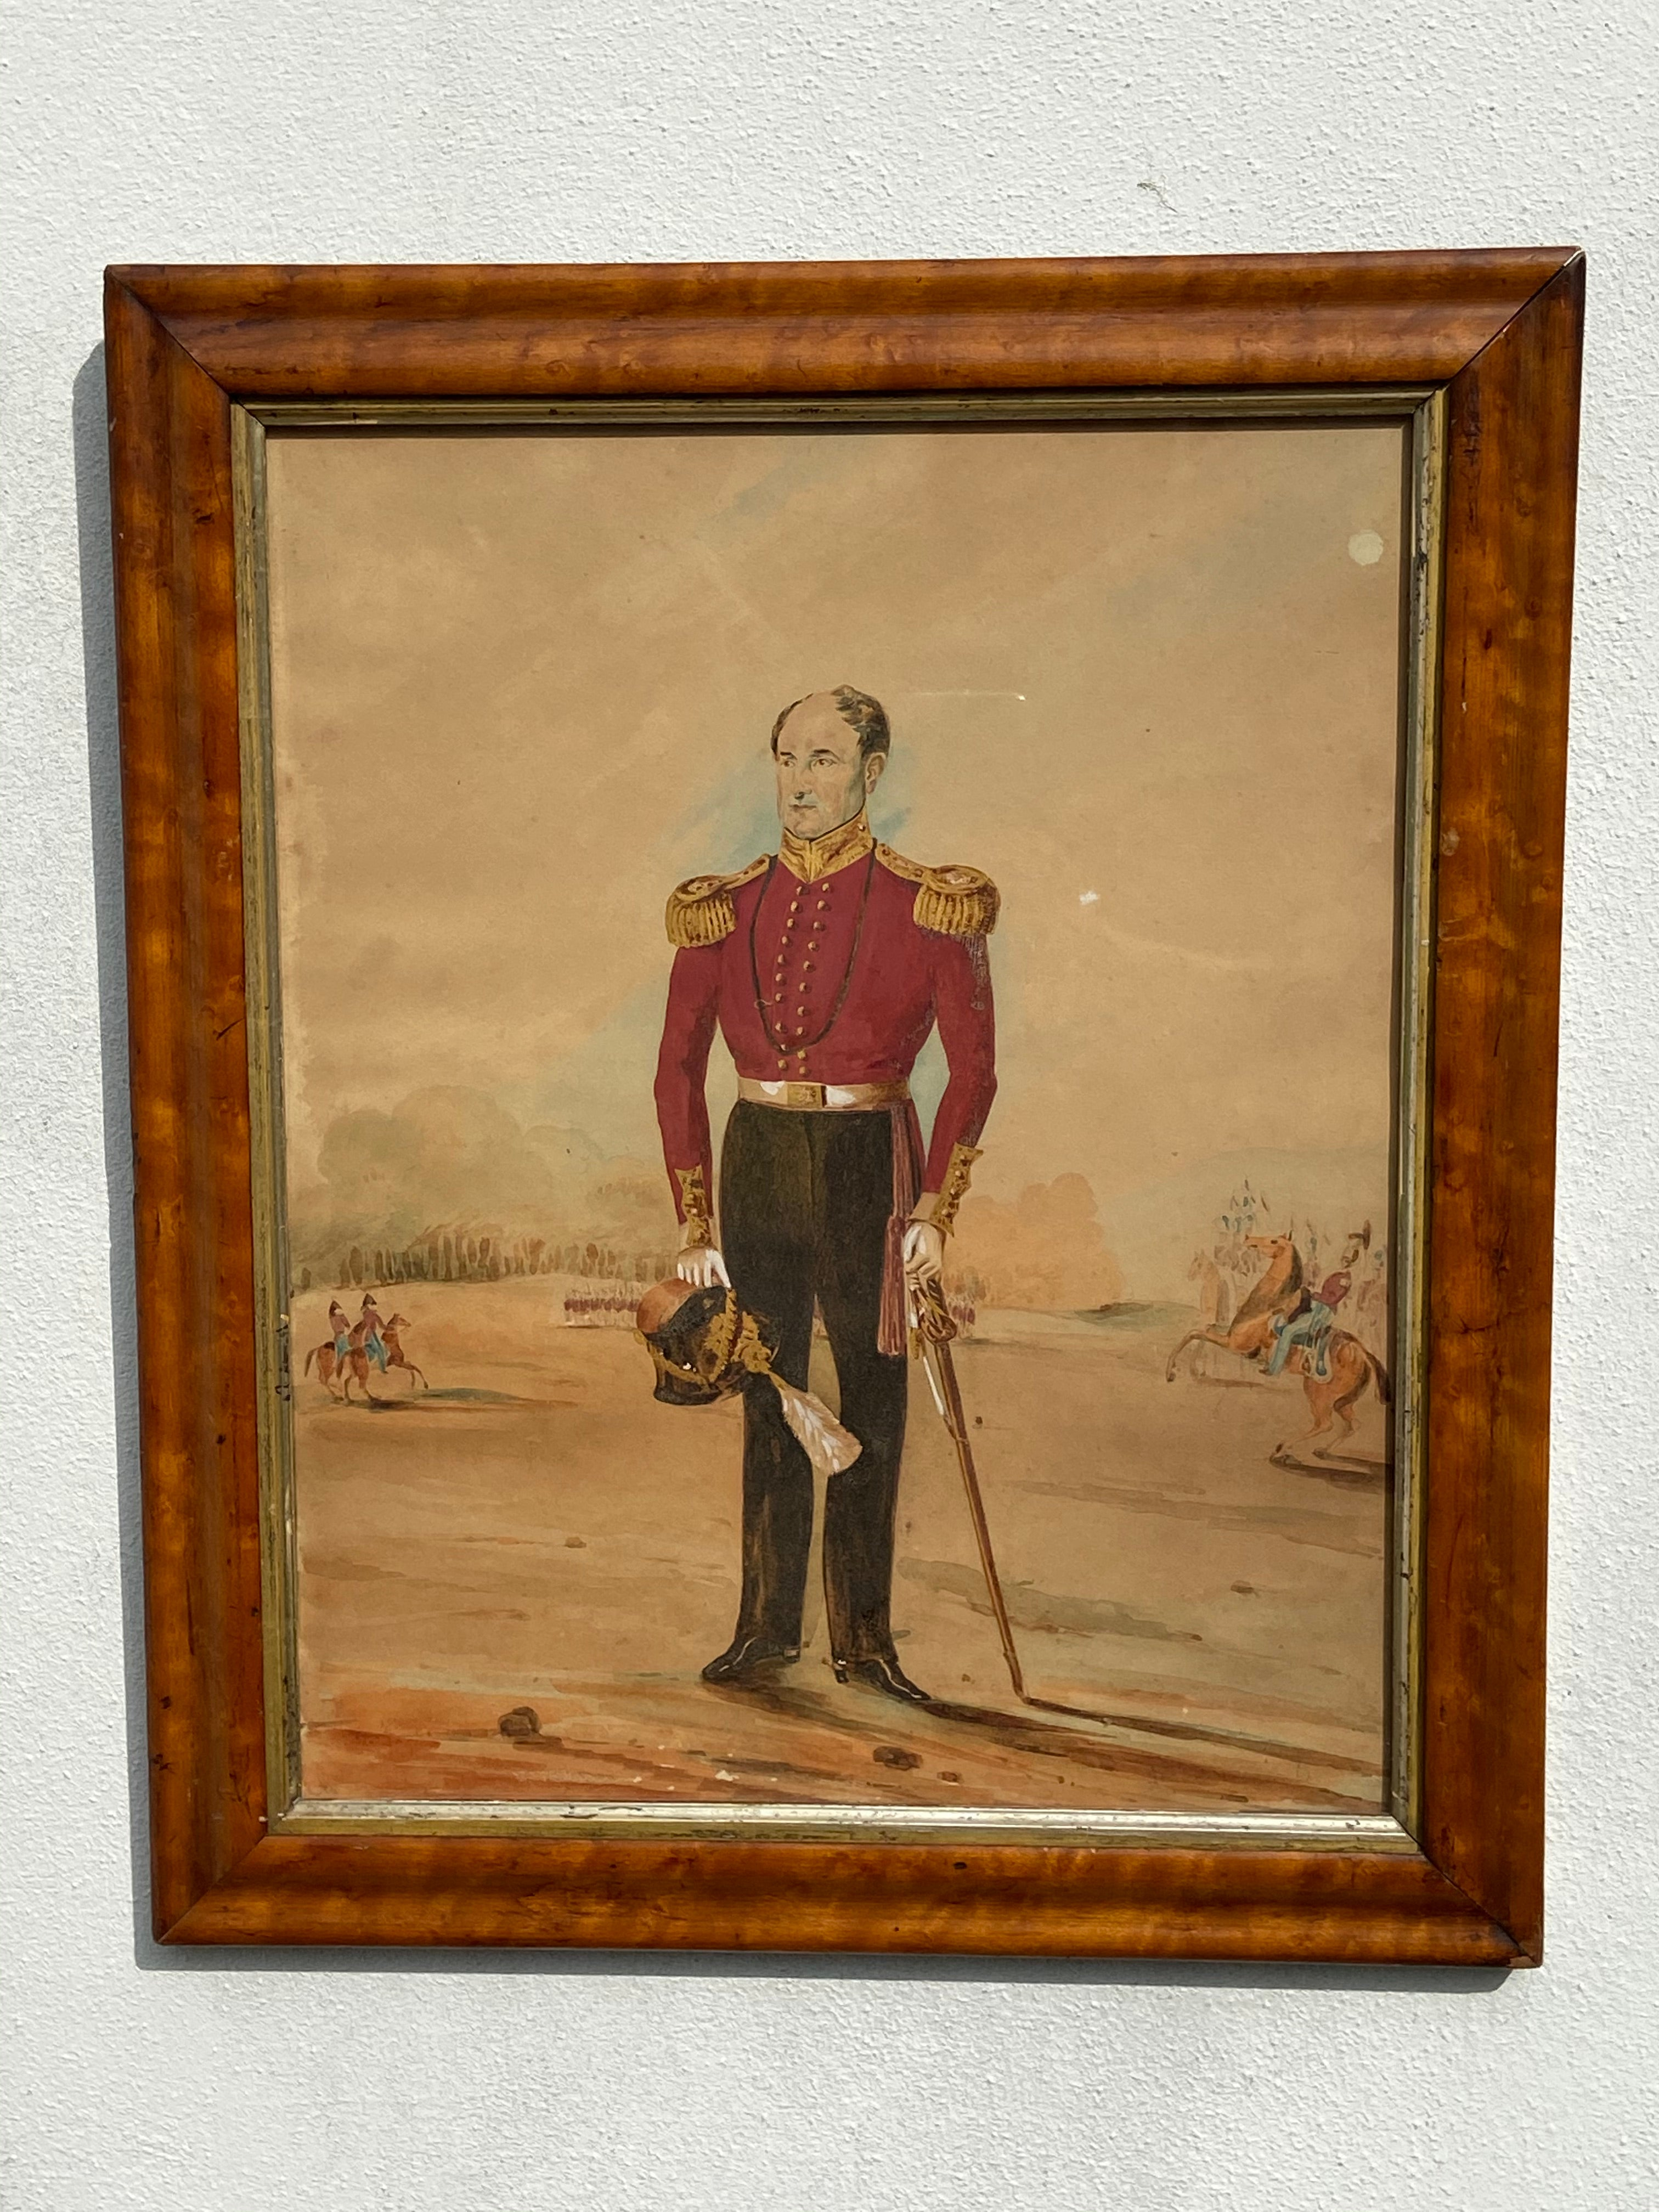 A good early 19th century portrait of a British military officer